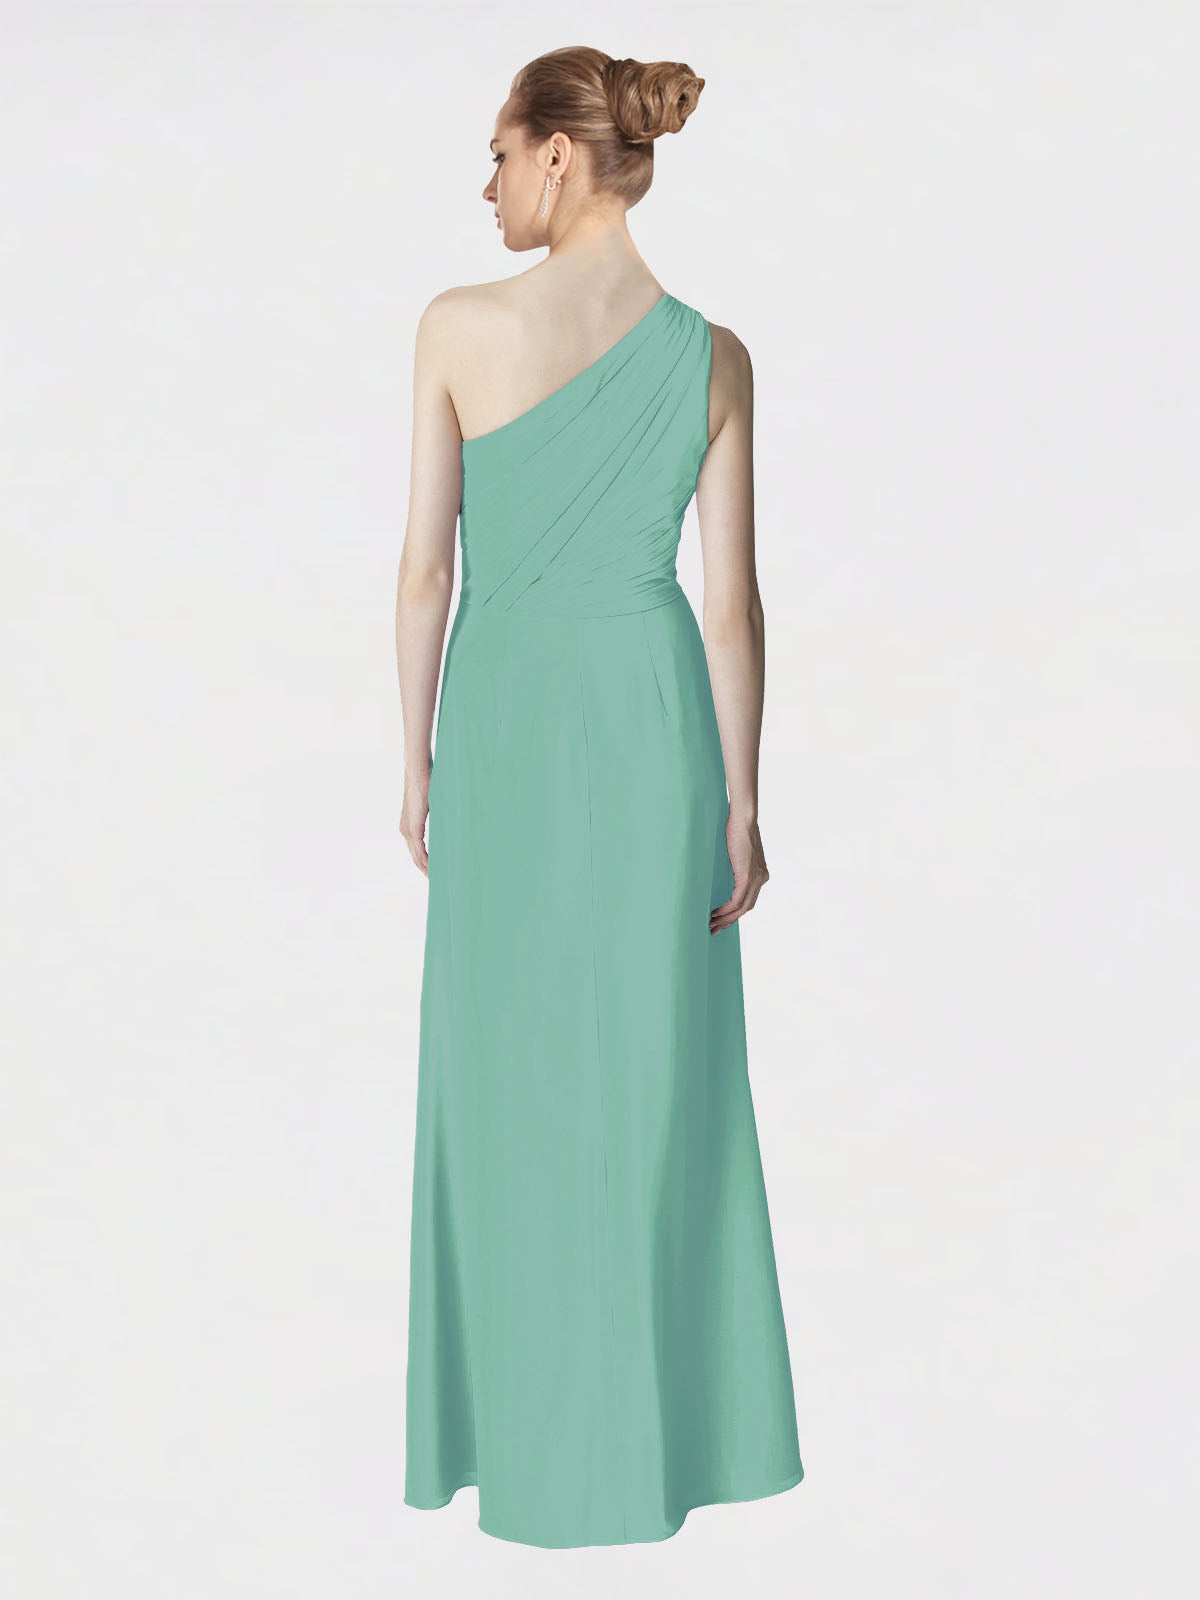 Long A-Line One Shoulder Sleeveless Jade Chiffon Bridesmaid Dress Aurora